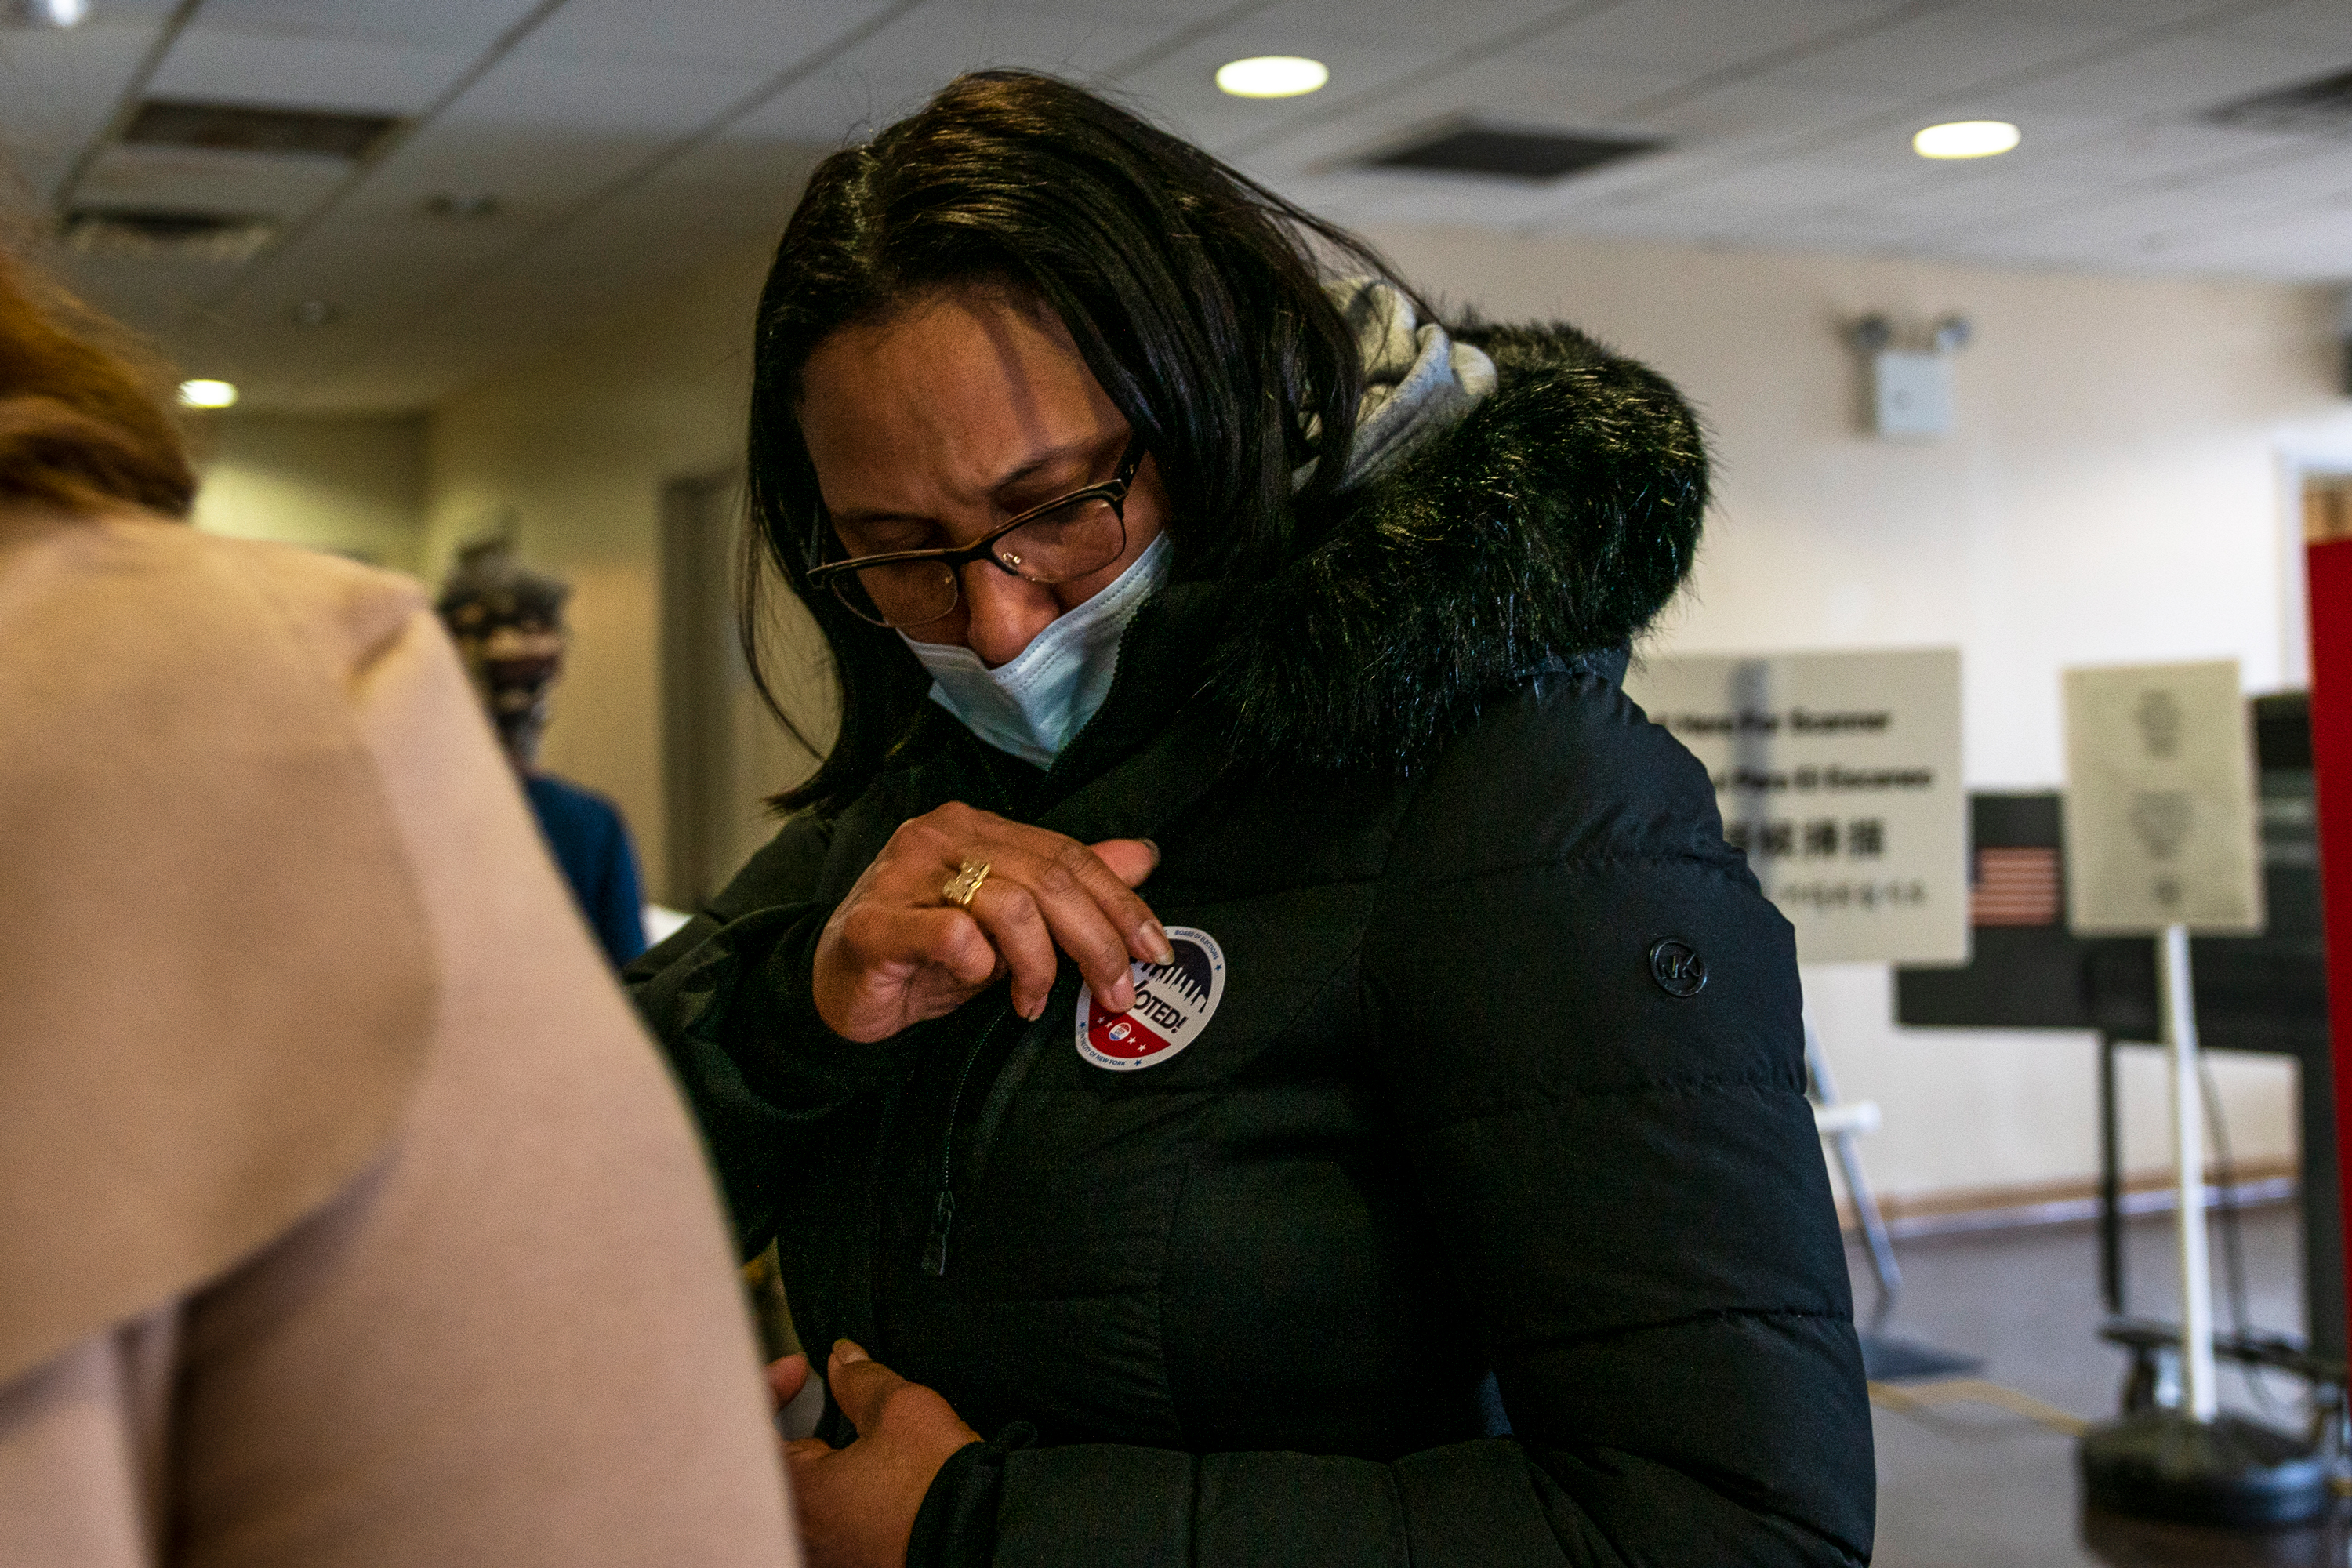 Milva Ventura, 46, puts on an election sticker at her Bronx polling place after voting for the first time, Nov. 3, 2020.